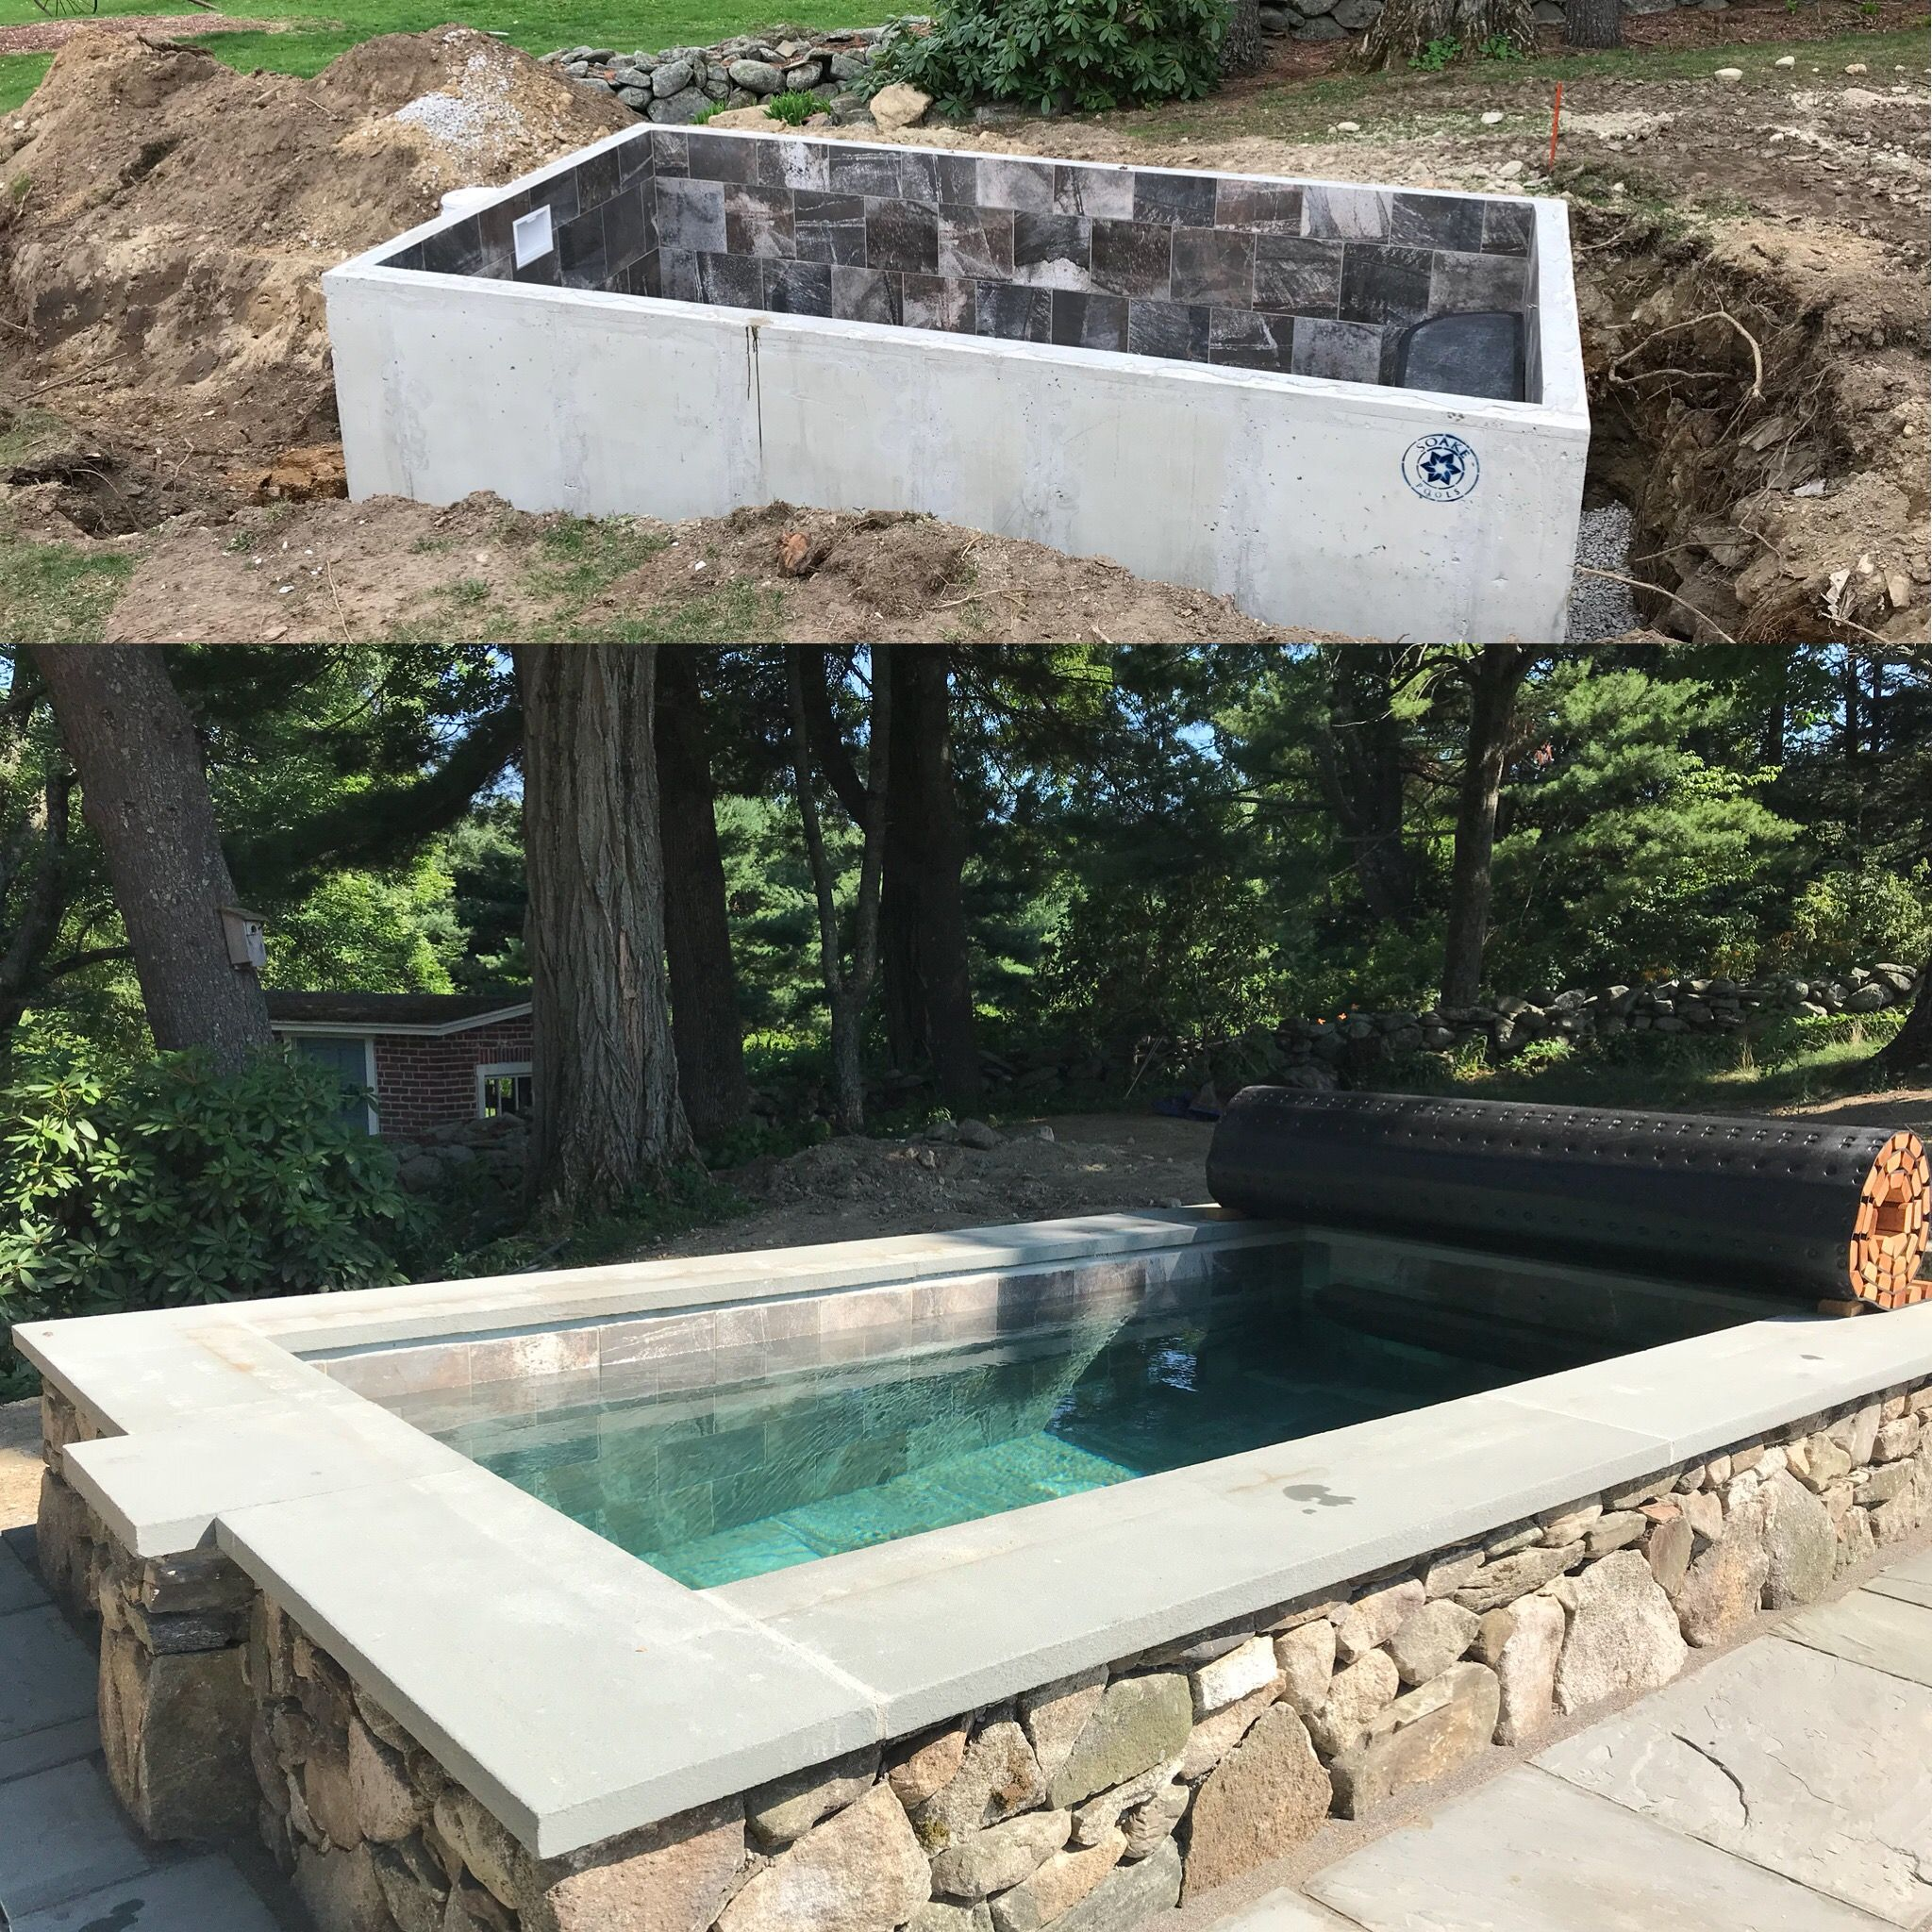 Before And After Stylish Outdoor Plunge Pool By Soake Pools Small Backyard Pools Small Pool Design Backyard Pool